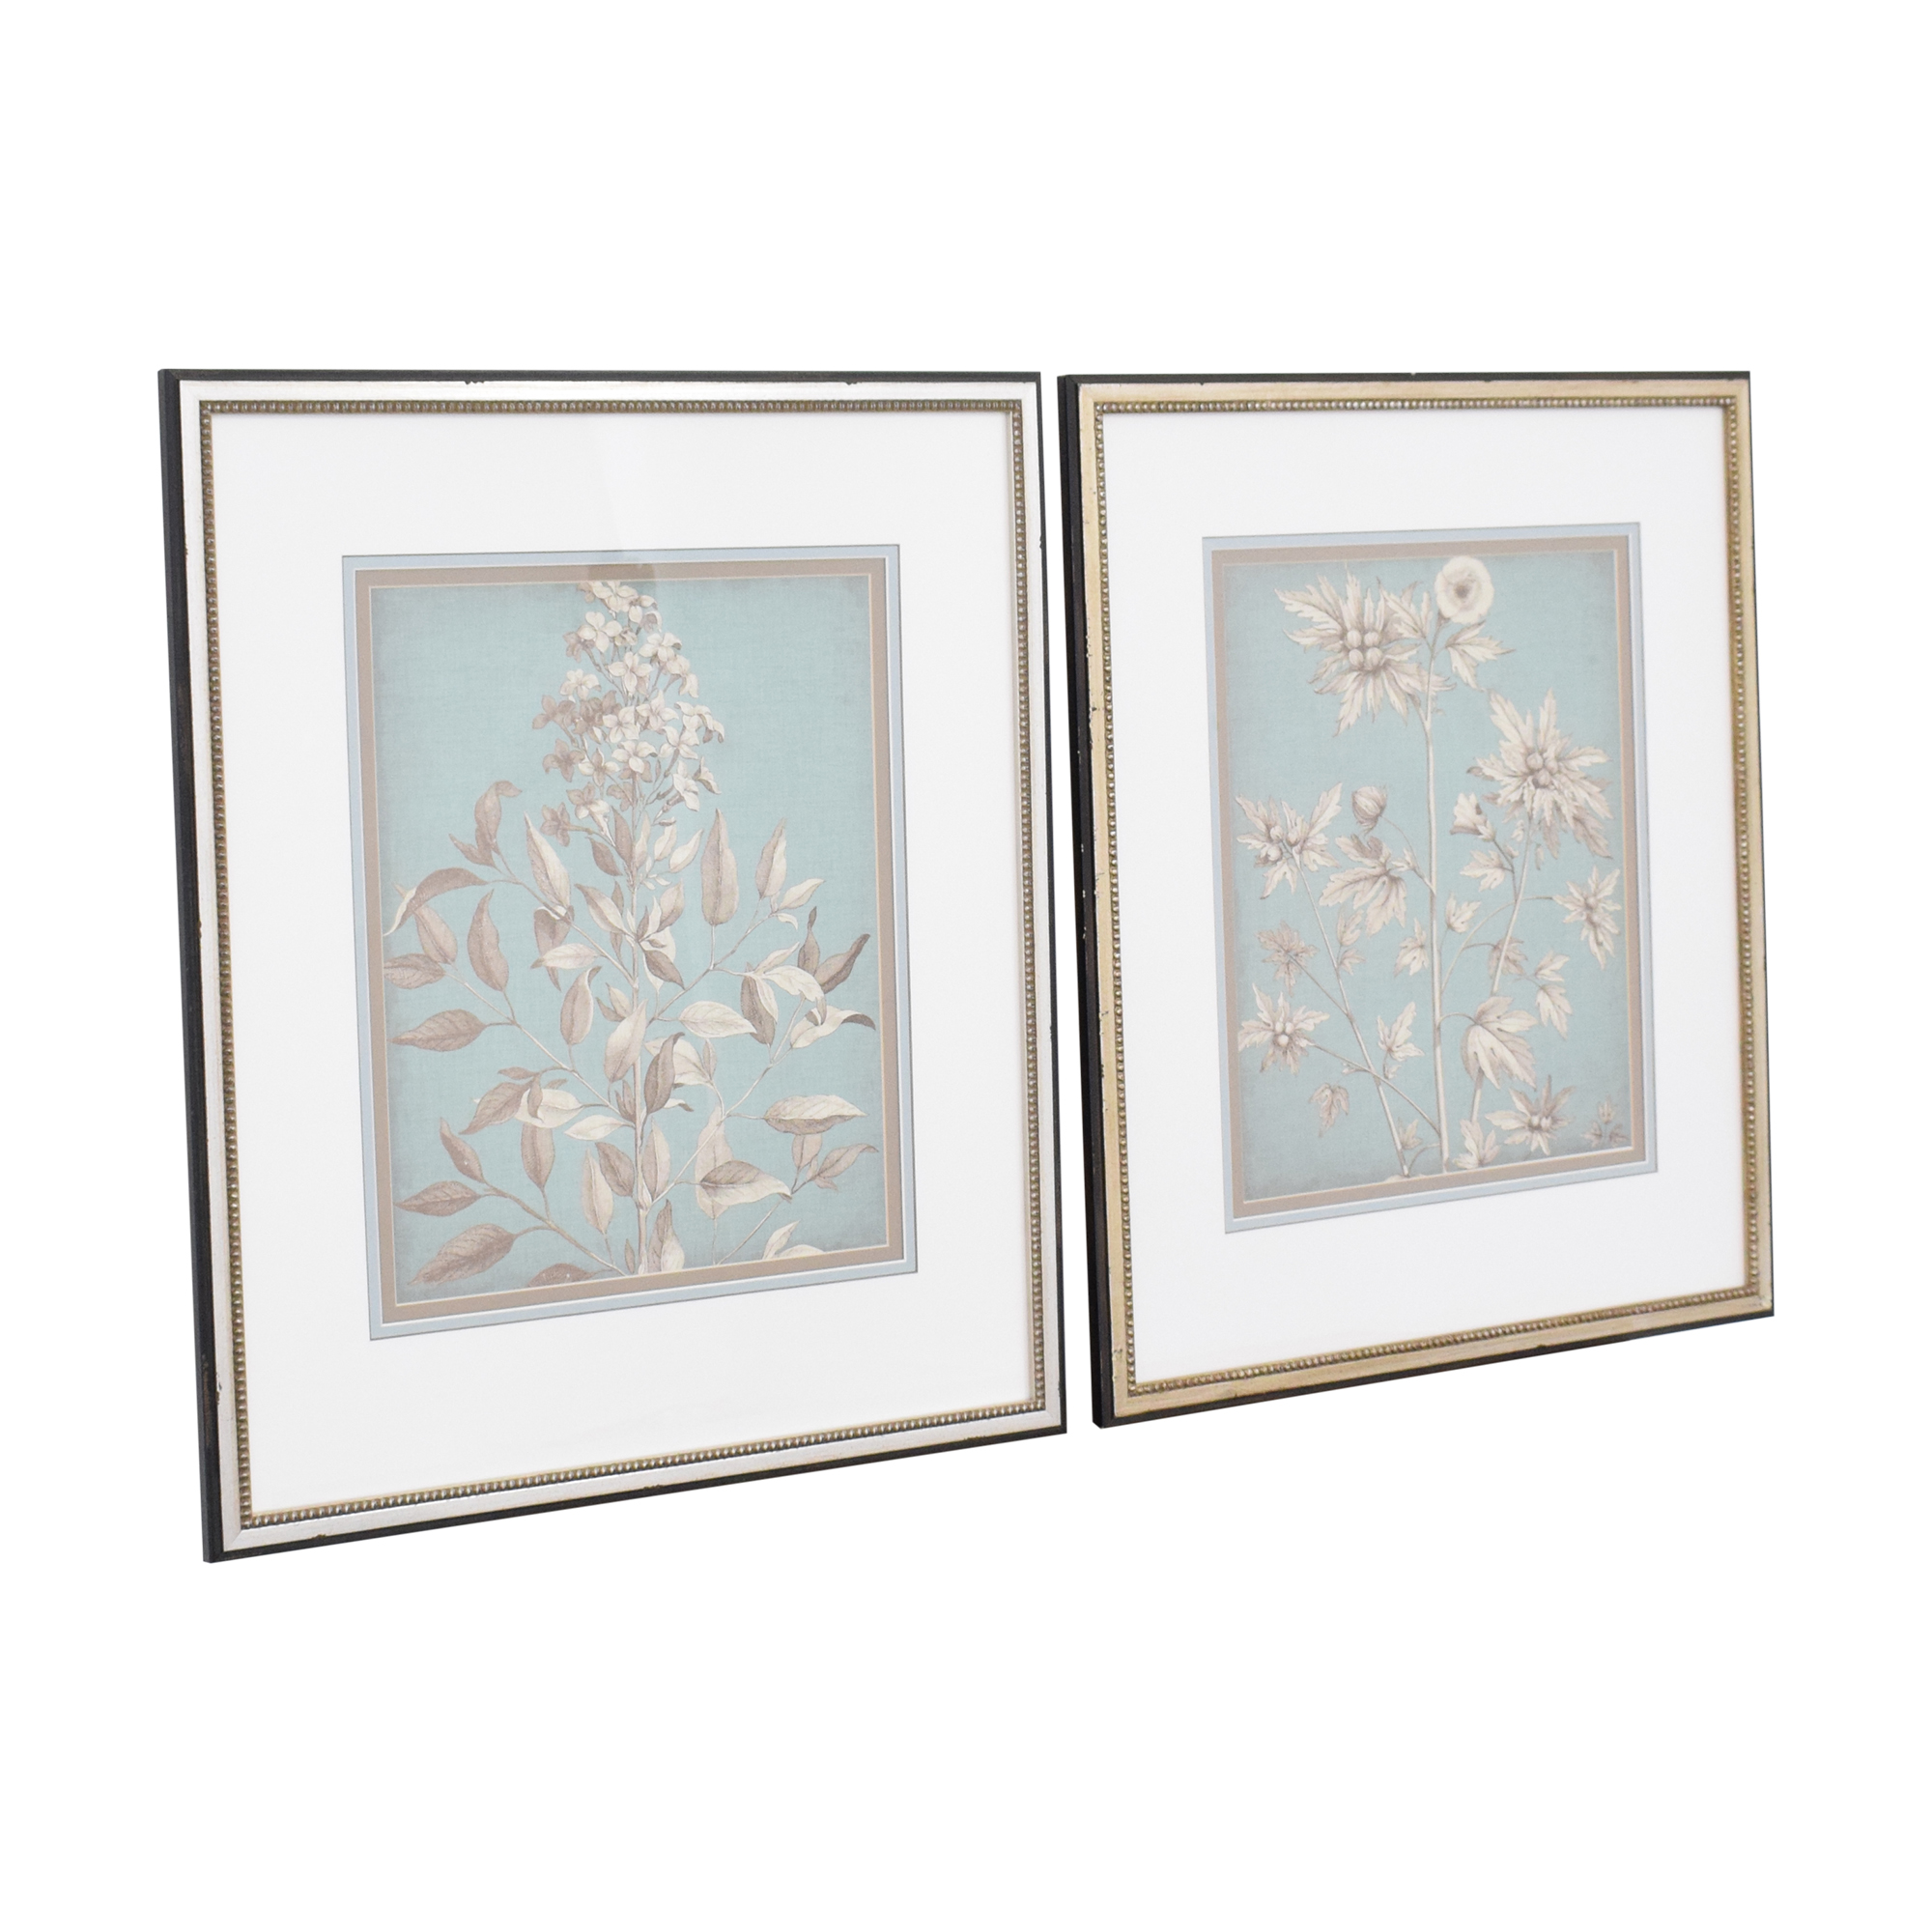 Ethan Allen Pastel Chintz Collection Wall Art sale